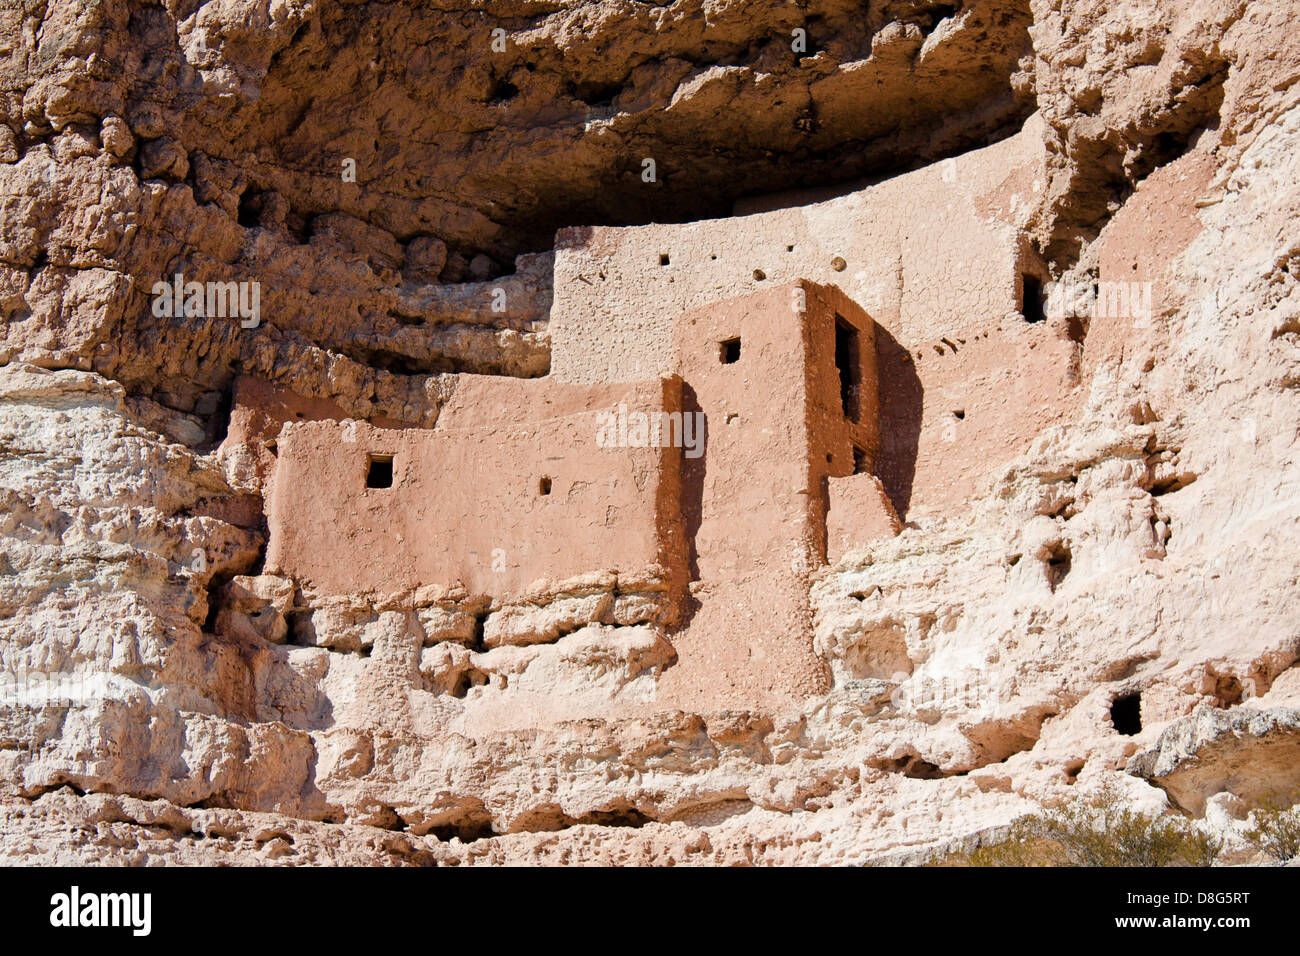 Closeup on cliff dwellings at Montezuma Castle National Monument near Camp Verde, Arizona Stock Photo